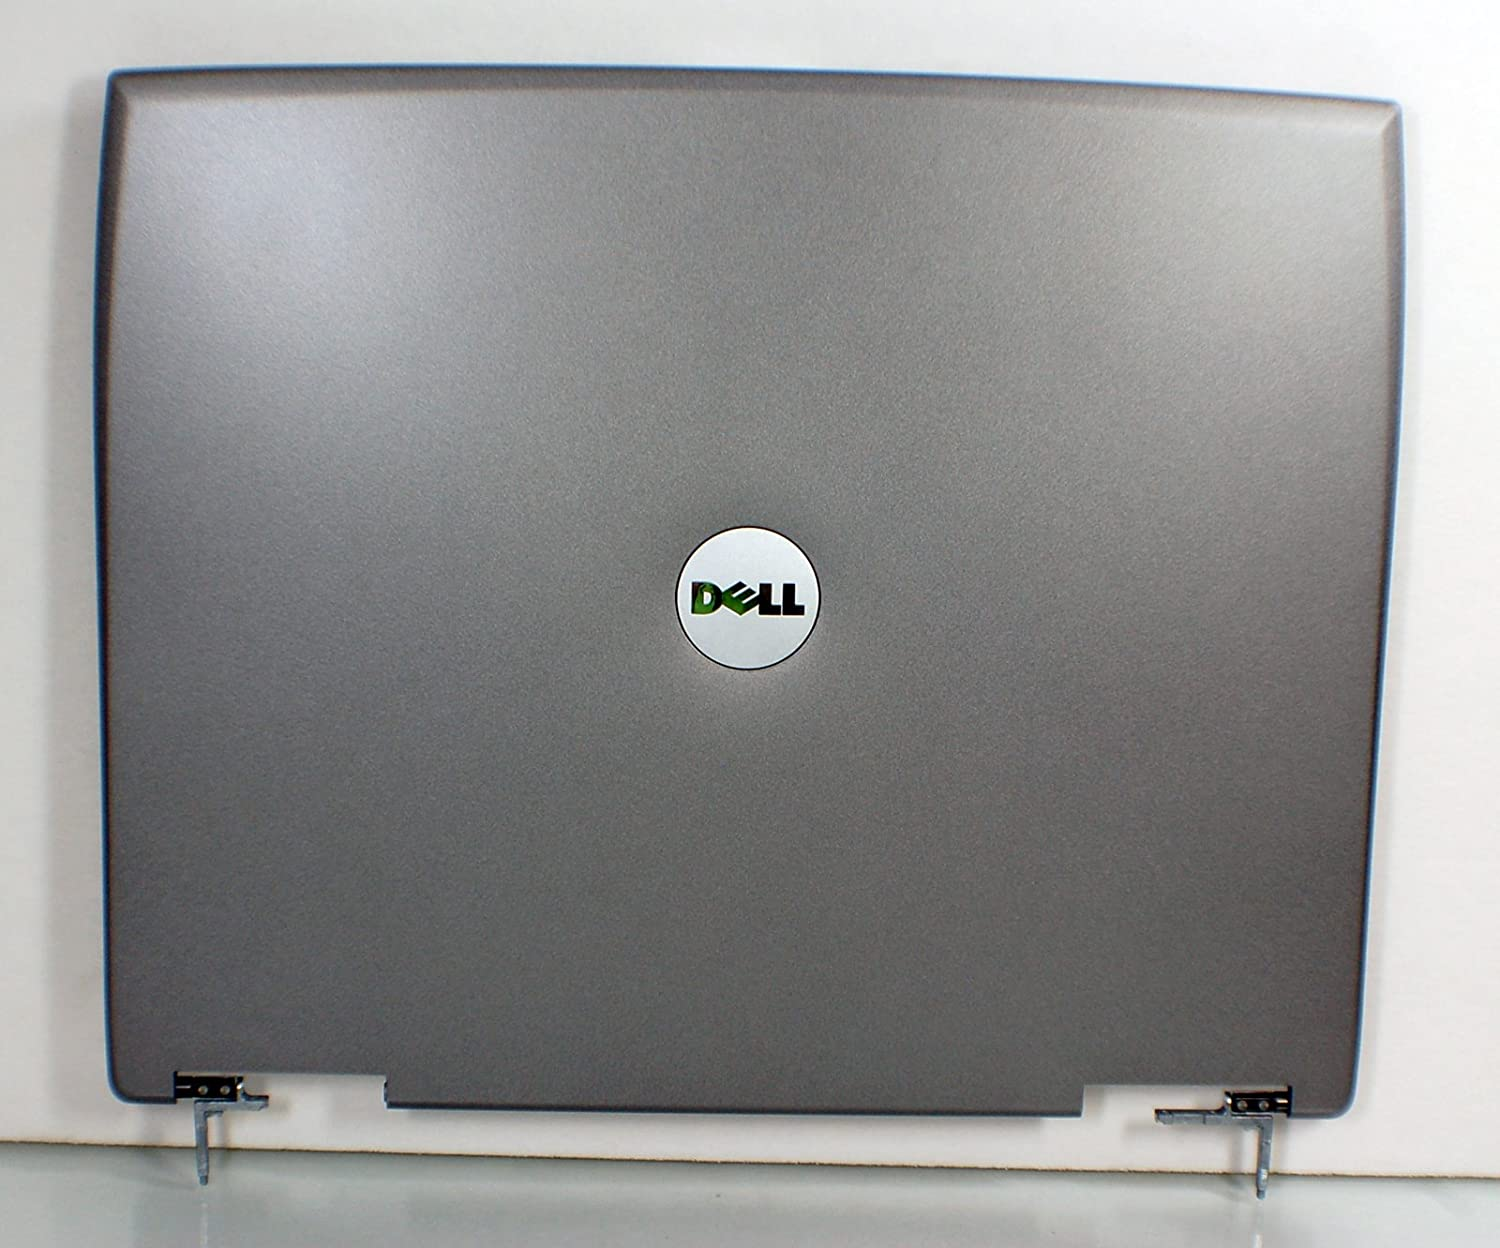 Dell New Genuine OEM Latitude D500 Laptop LCD Gray 14.1 Inch 34JM3LCWI07 Rear Case Back Cover Top Monitor Panel Enclosure Housing Lid W/Hinges Assembly 4Y198